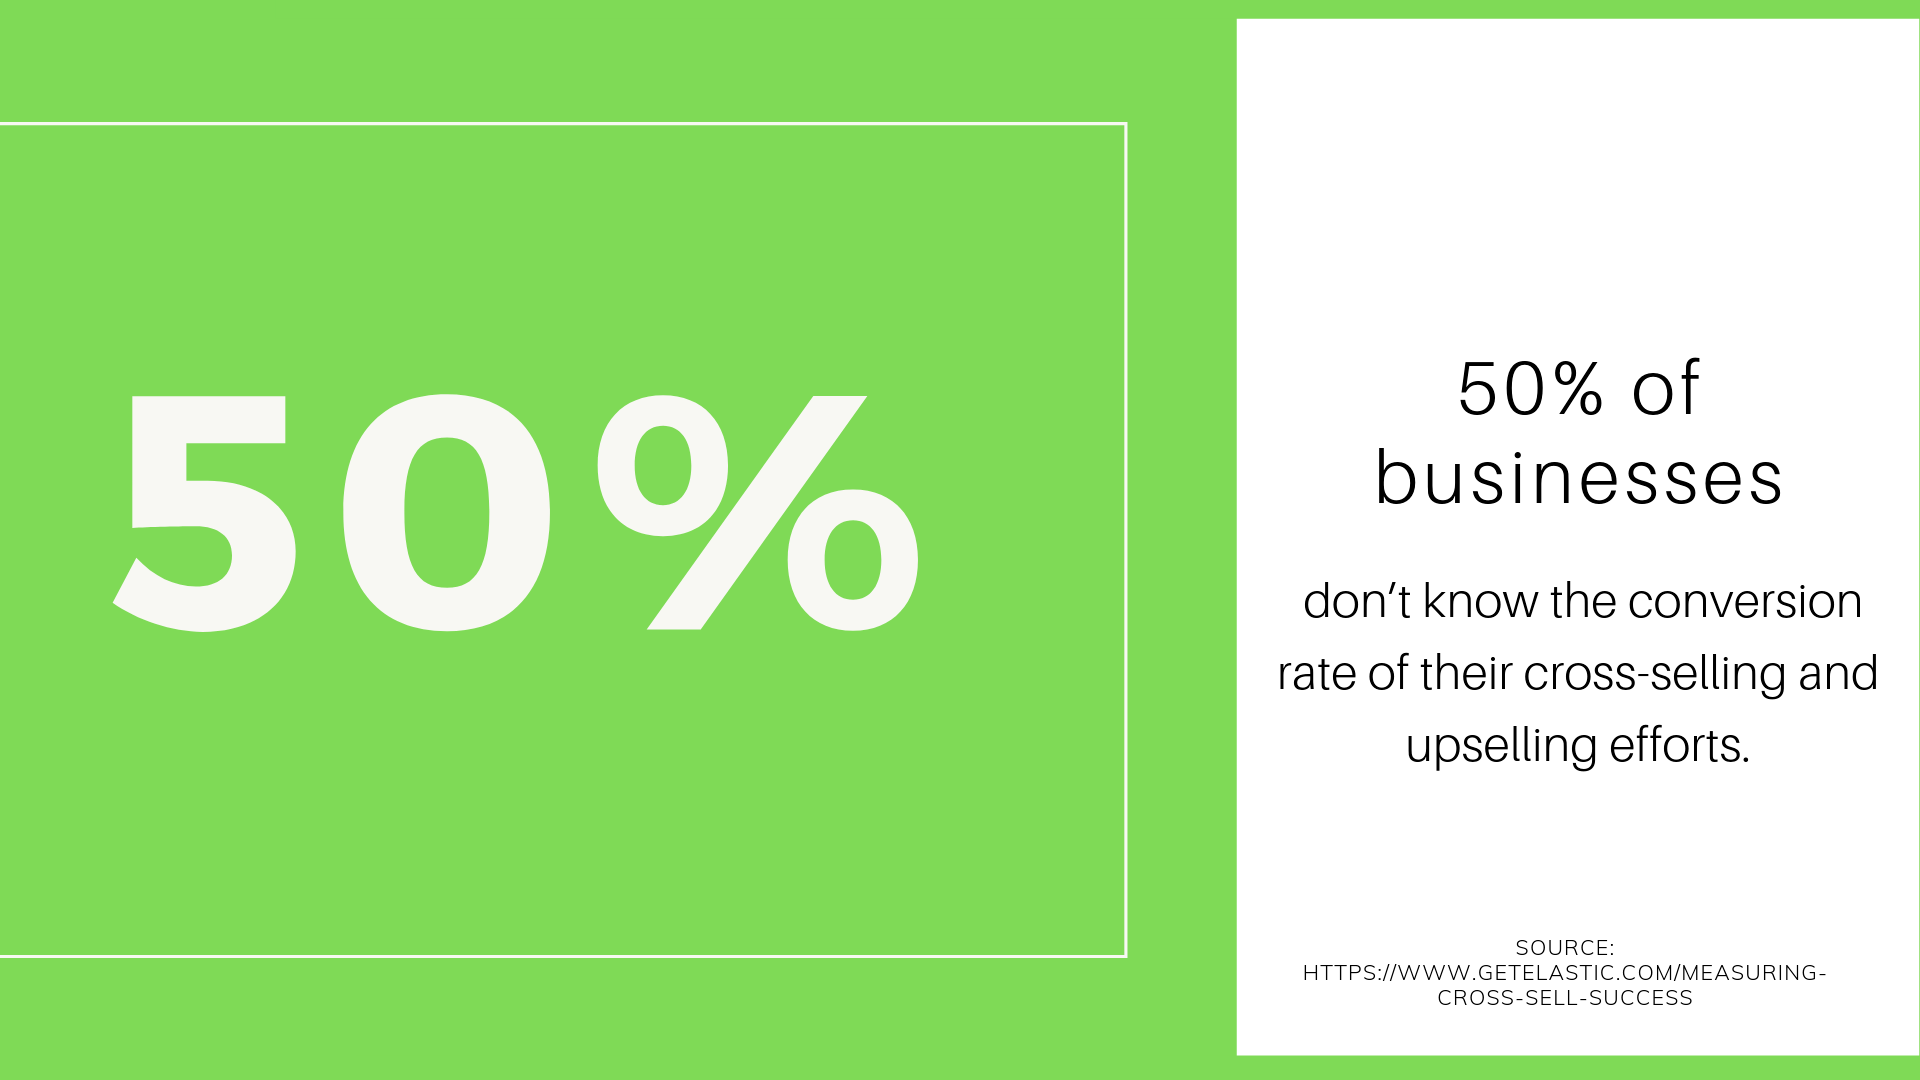 50% of businesses don't know the conversion rate of their cross-selling and upselling efforts.